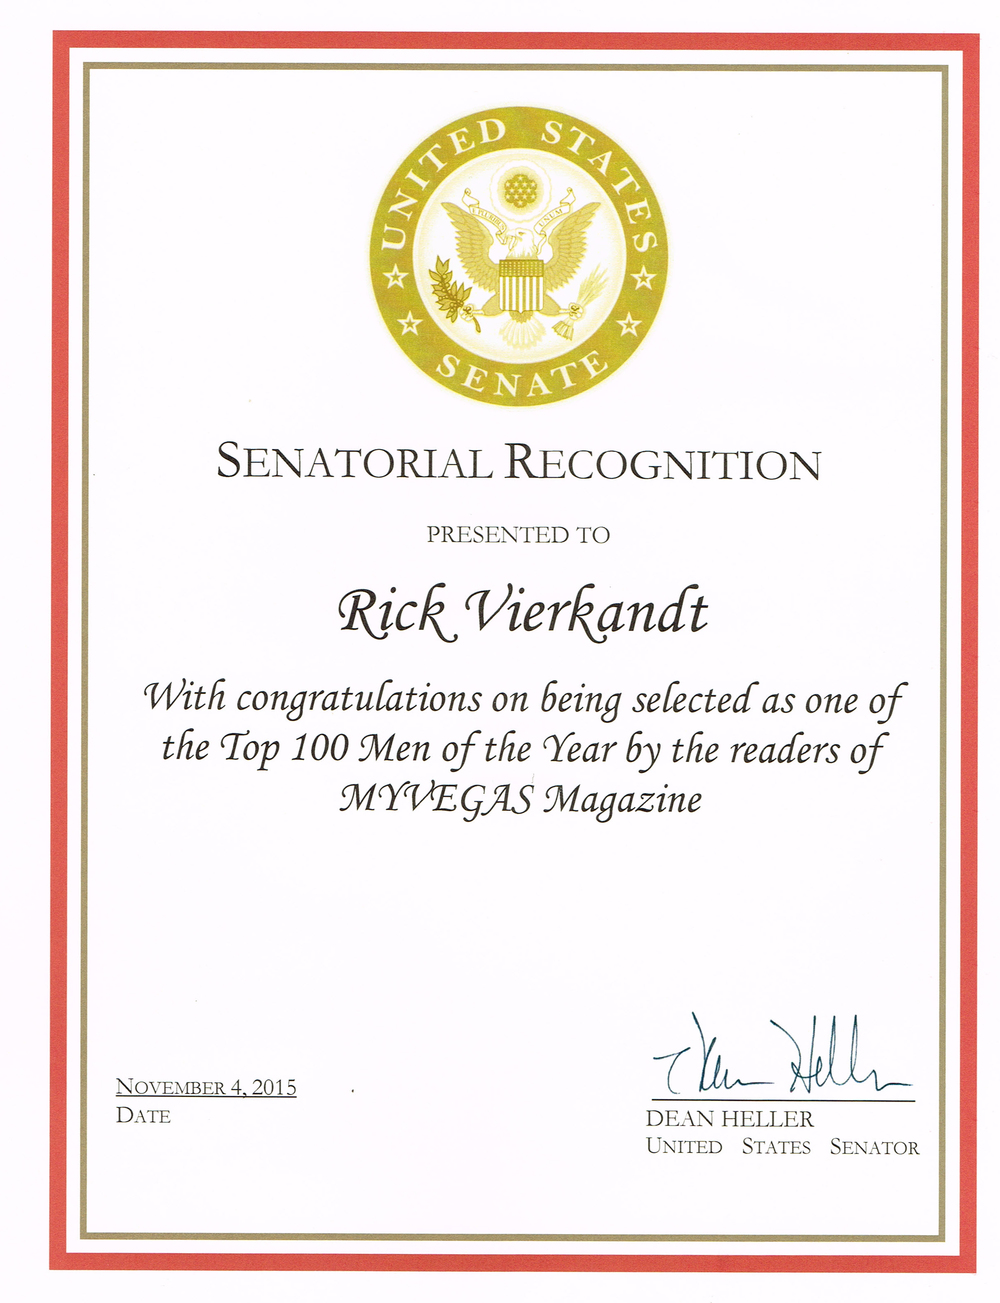 Senatorial Recognition- Dean Heller